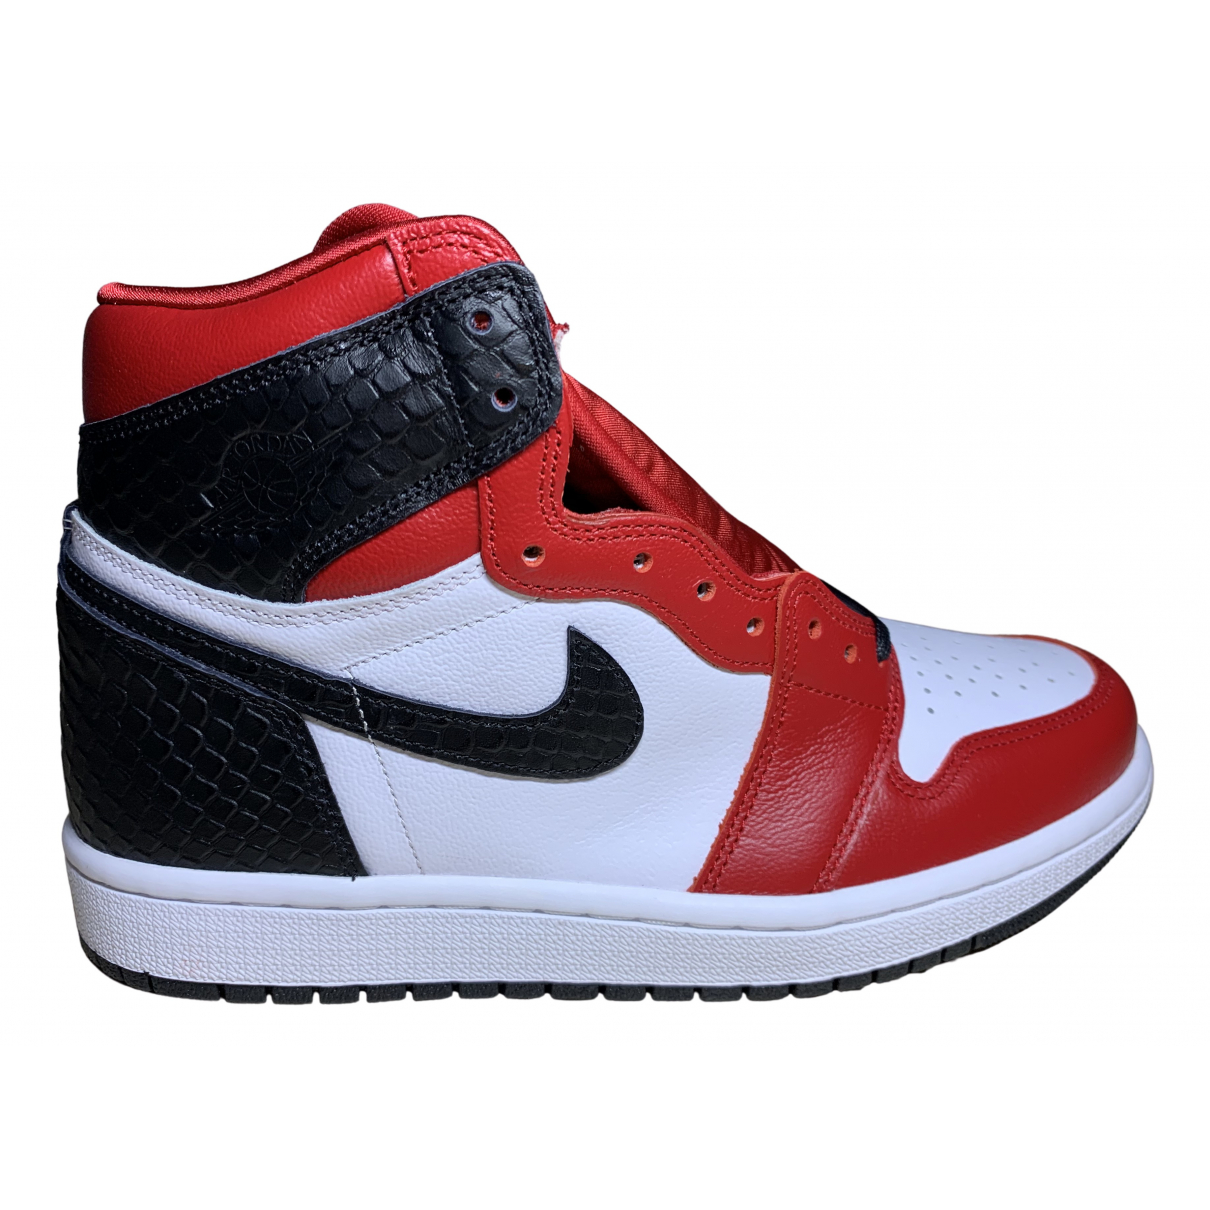 Jordan - Baskets Air Jordan 1  pour femme - rouge